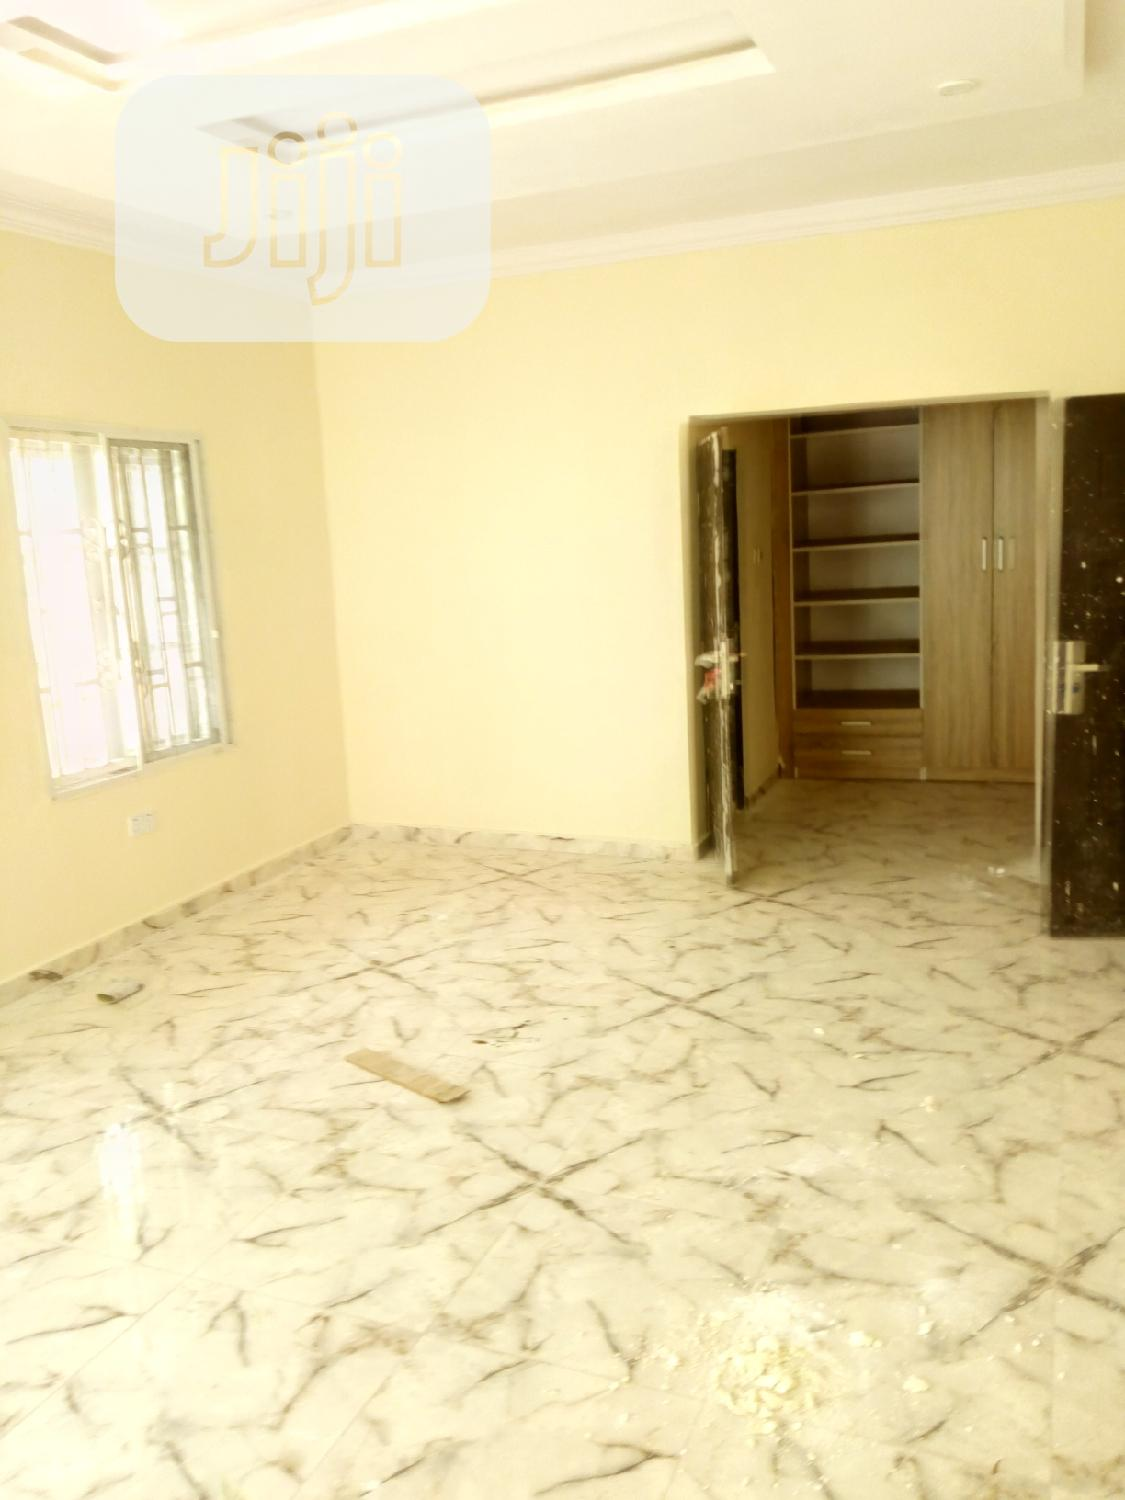 3 Bedrooms Terrace Duplex Located At Meridian Park Estate | Houses & Apartments For Sale for sale in Ajah, Lagos State, Nigeria